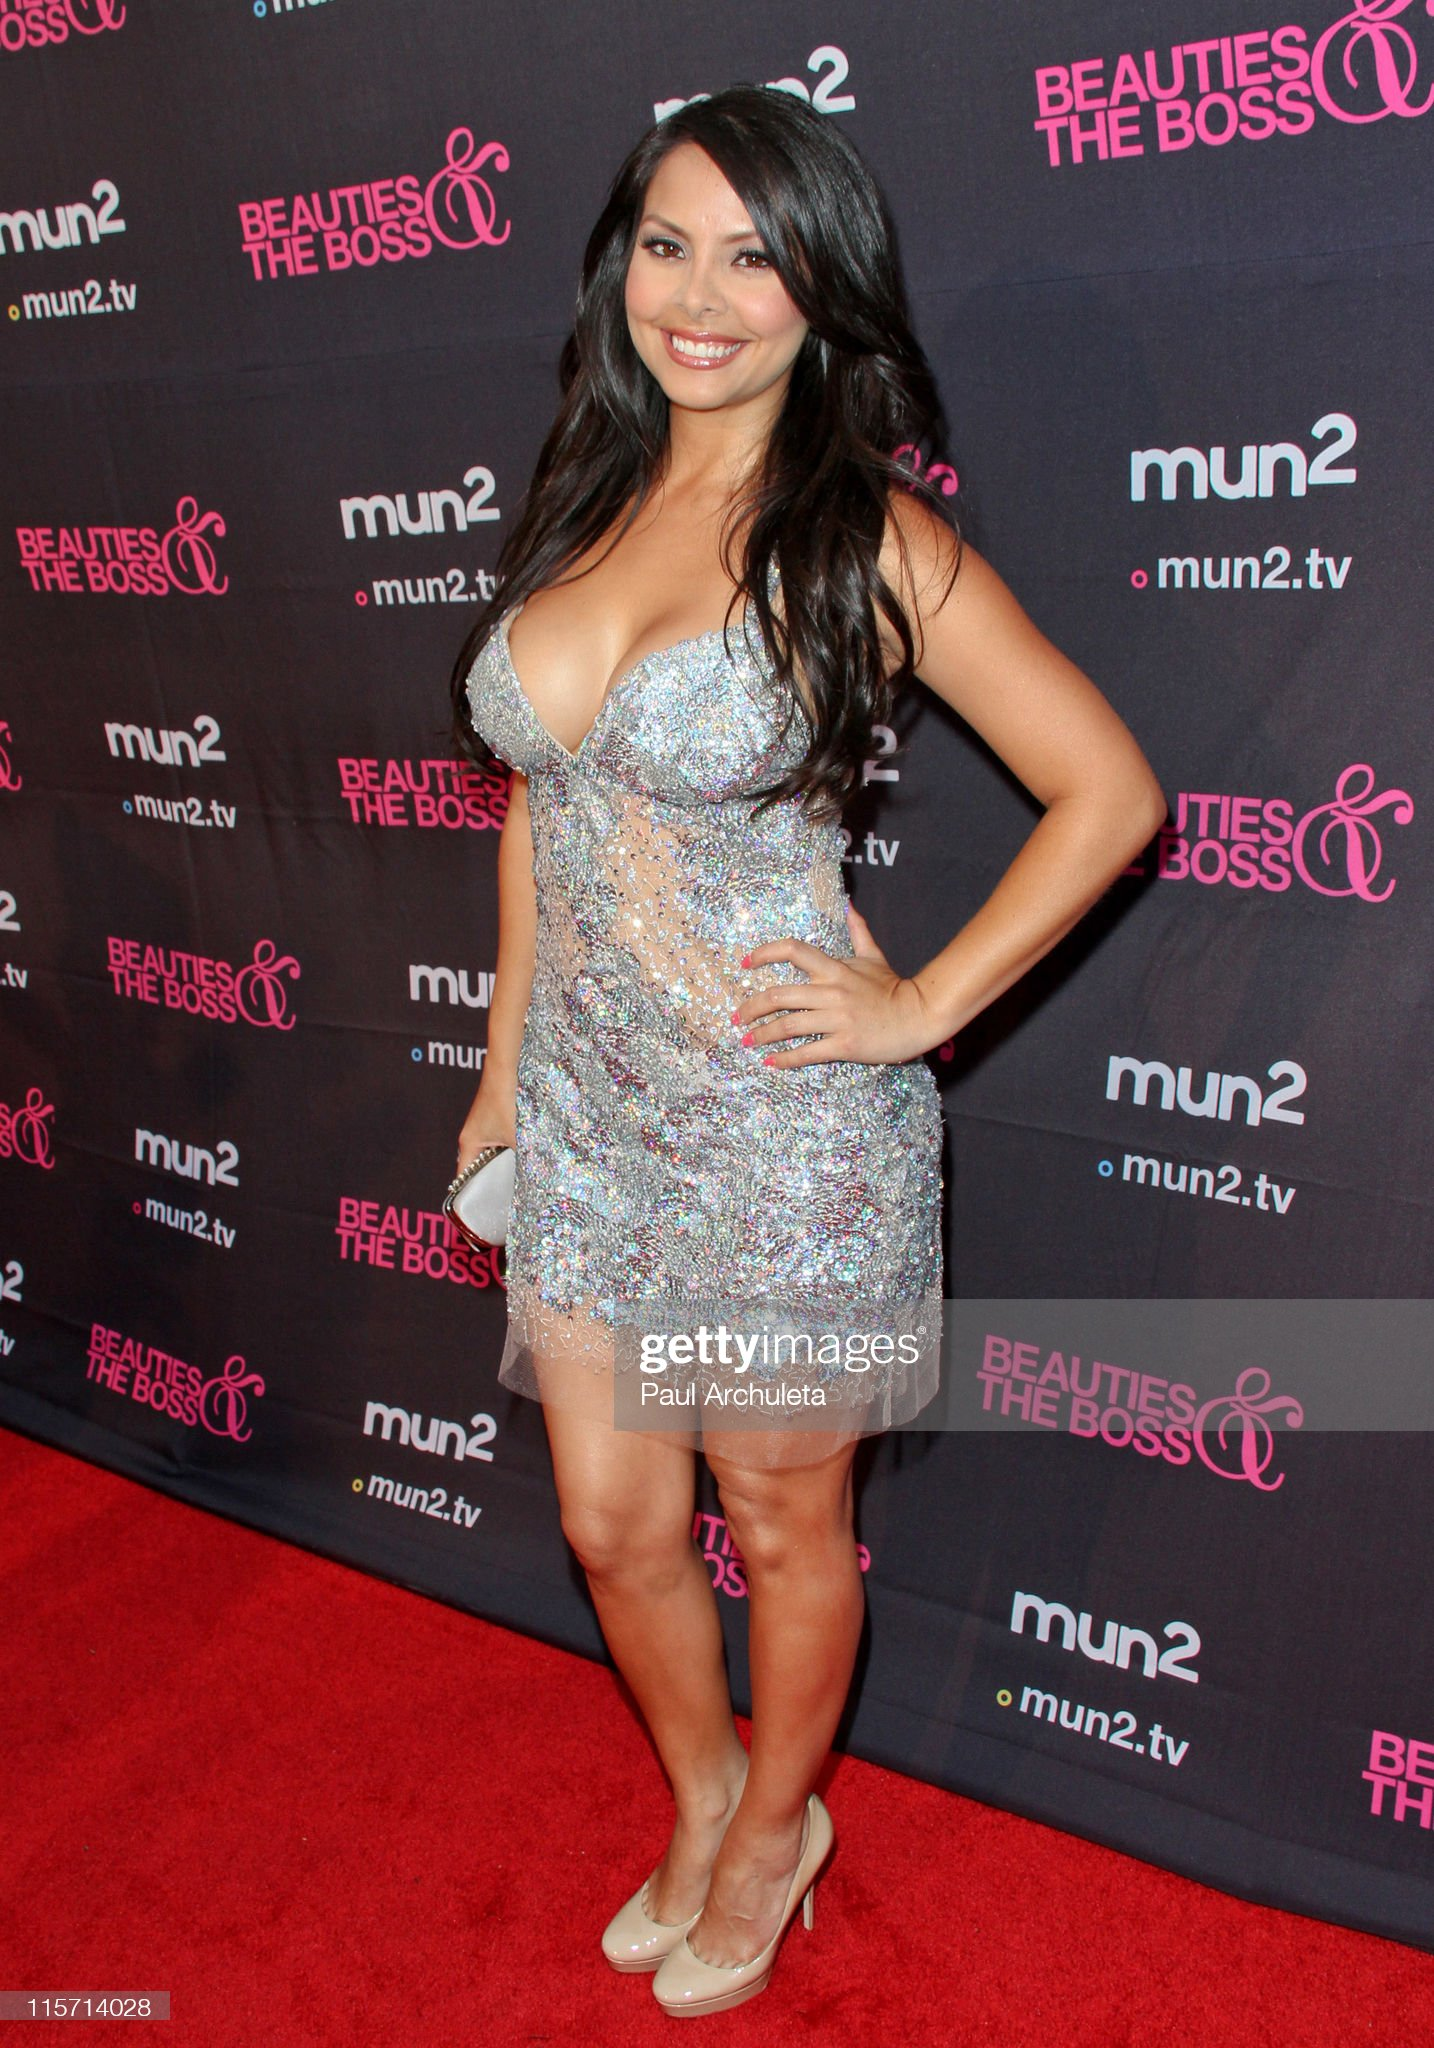 ¿Cuánto mide Monica Weitzel? - Altura - Real height Actress-monica-weitzel-arrives-at-the-beauties-the-boss-premiere-at-picture-id115714028?s=2048x2048